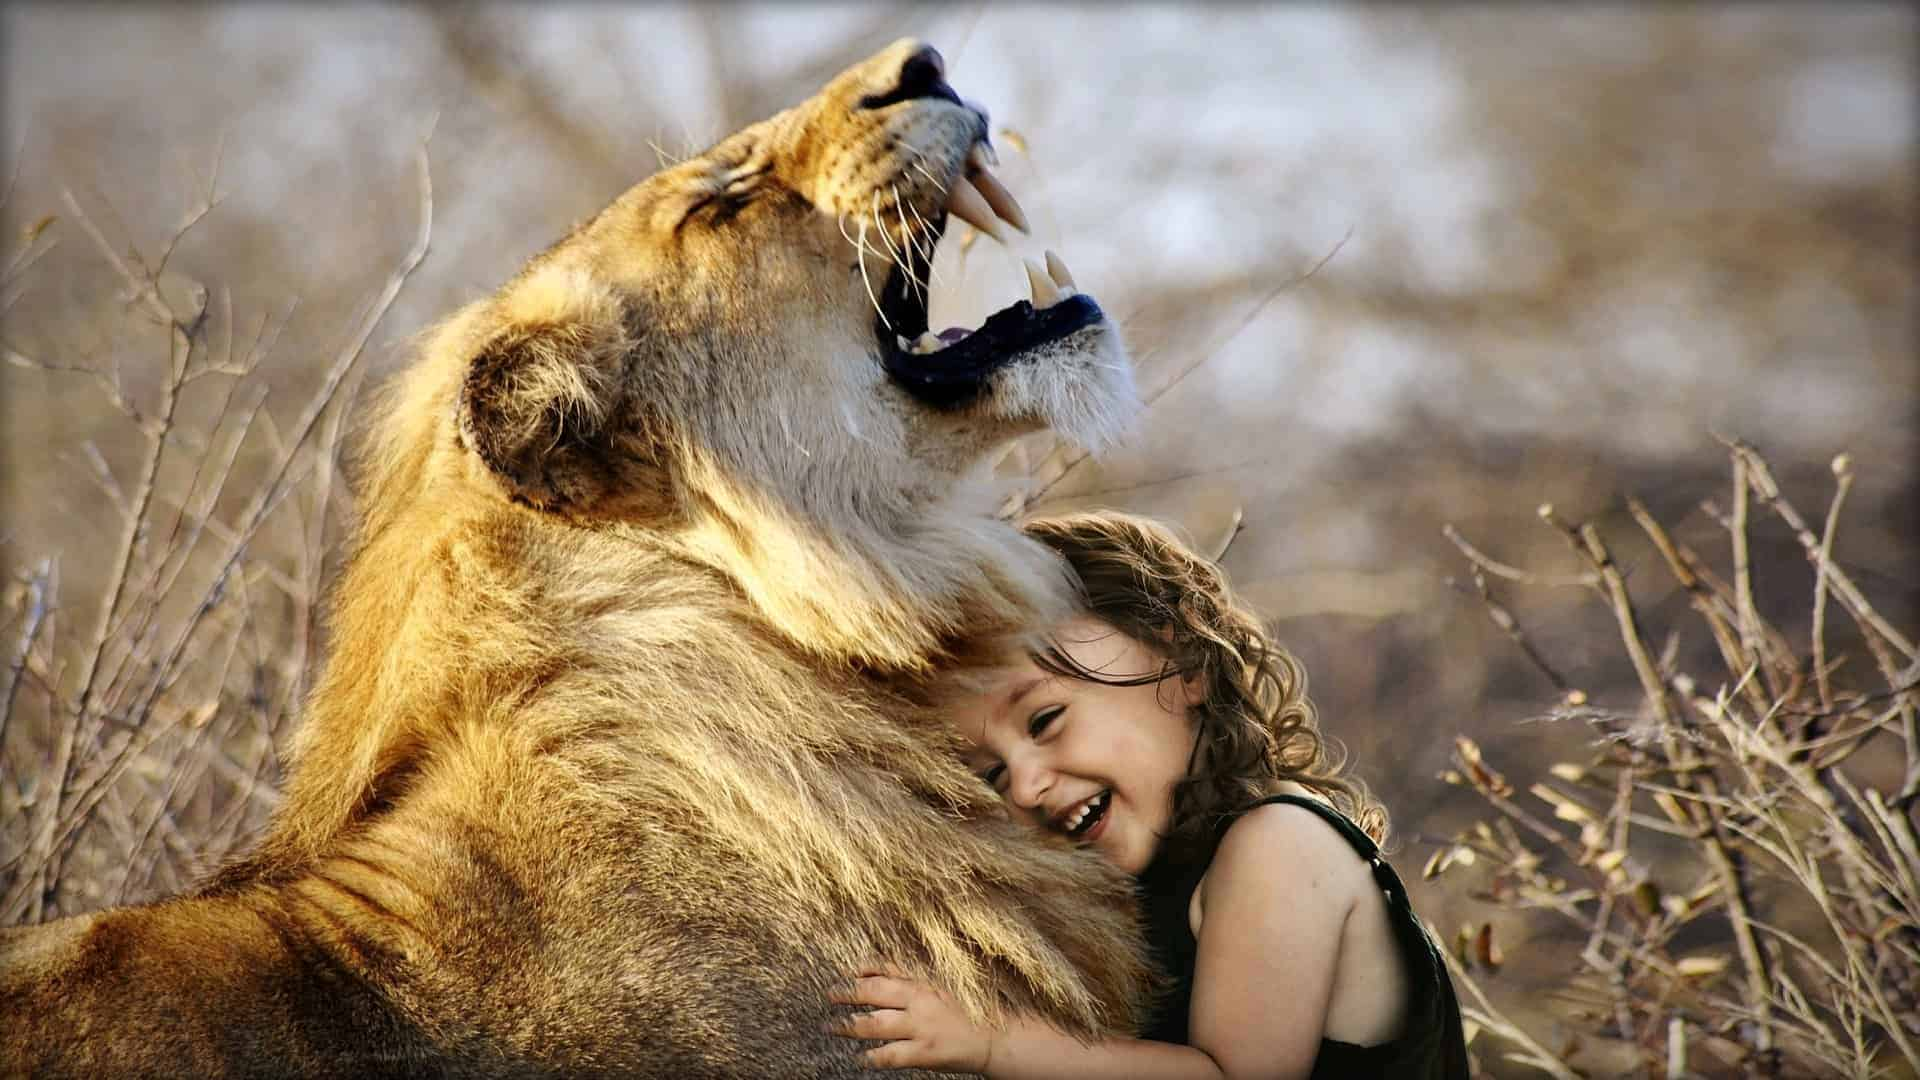 The image shows a lion roaring in the wild as it is apparently hugged by a small child.